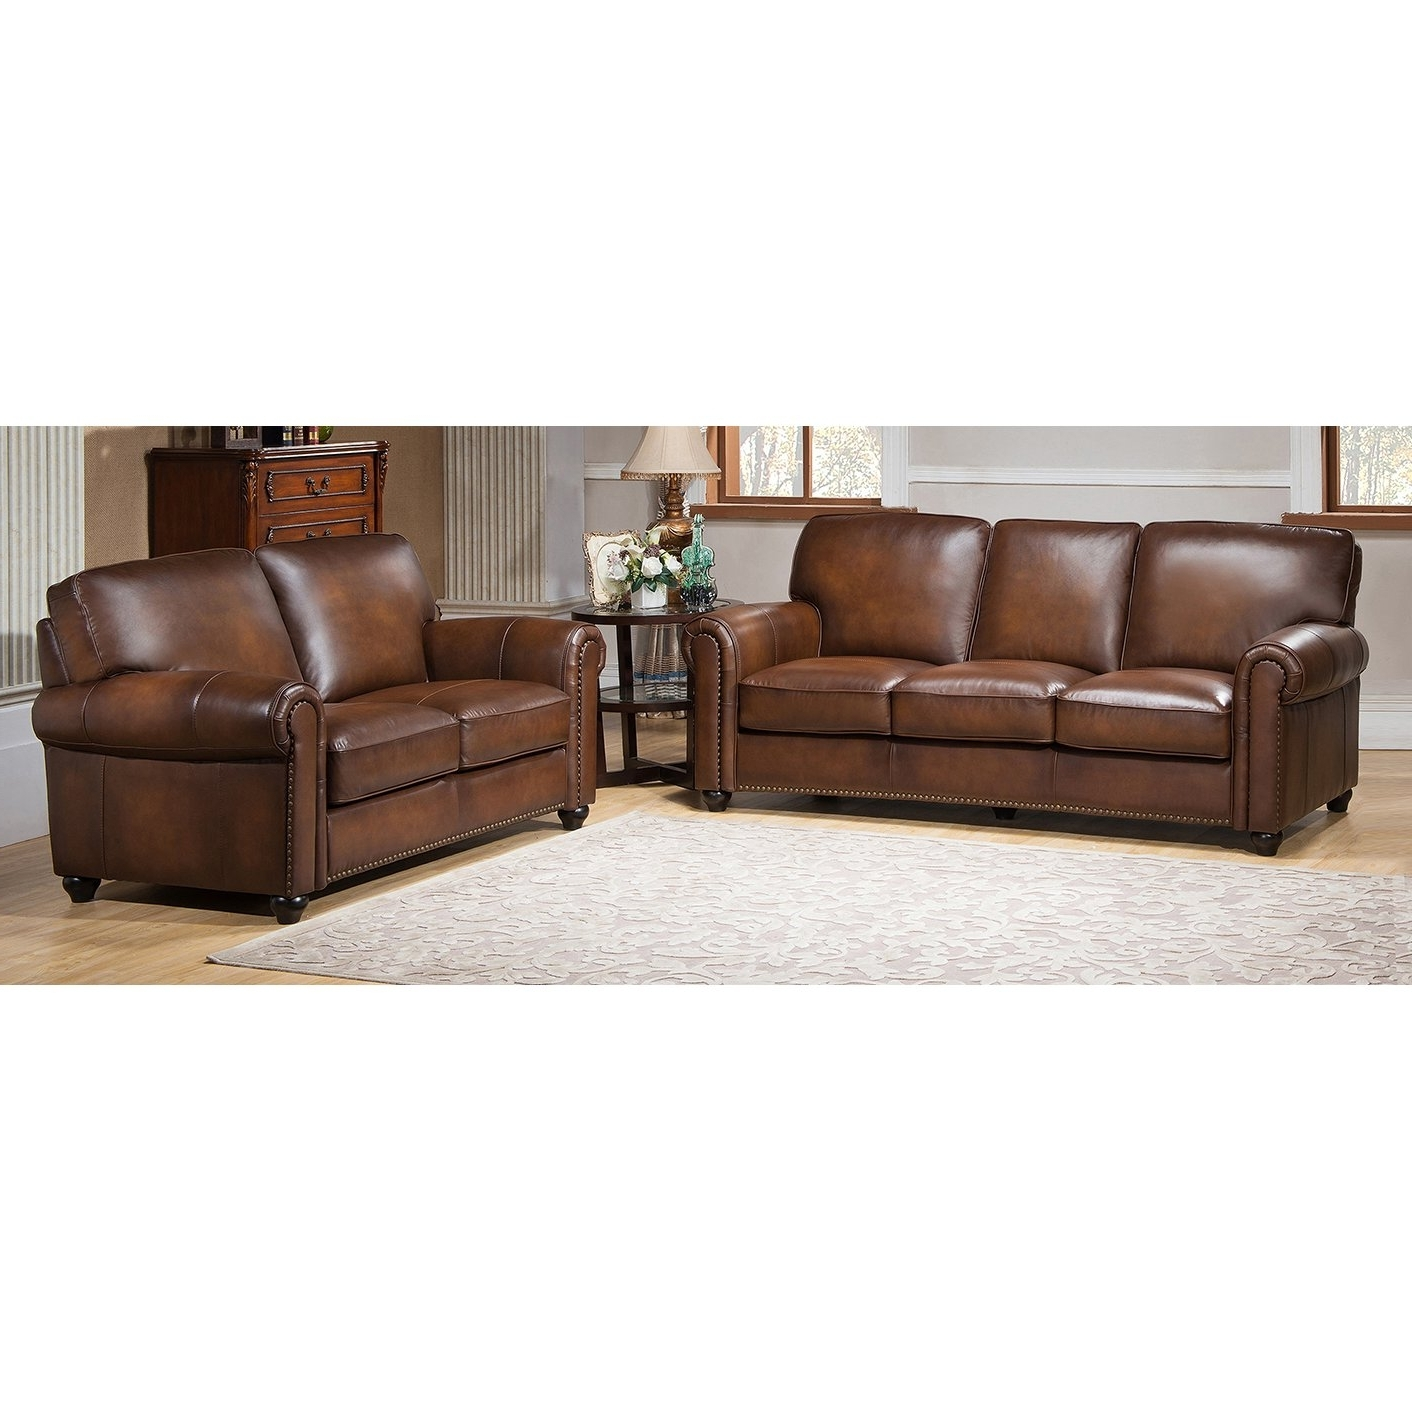 Lazyboy Sectional Prices Abbyson Montgomery Leather Reversible With Regard To Most Popular Sectional Sofas At Sam's Club (View 5 of 20)